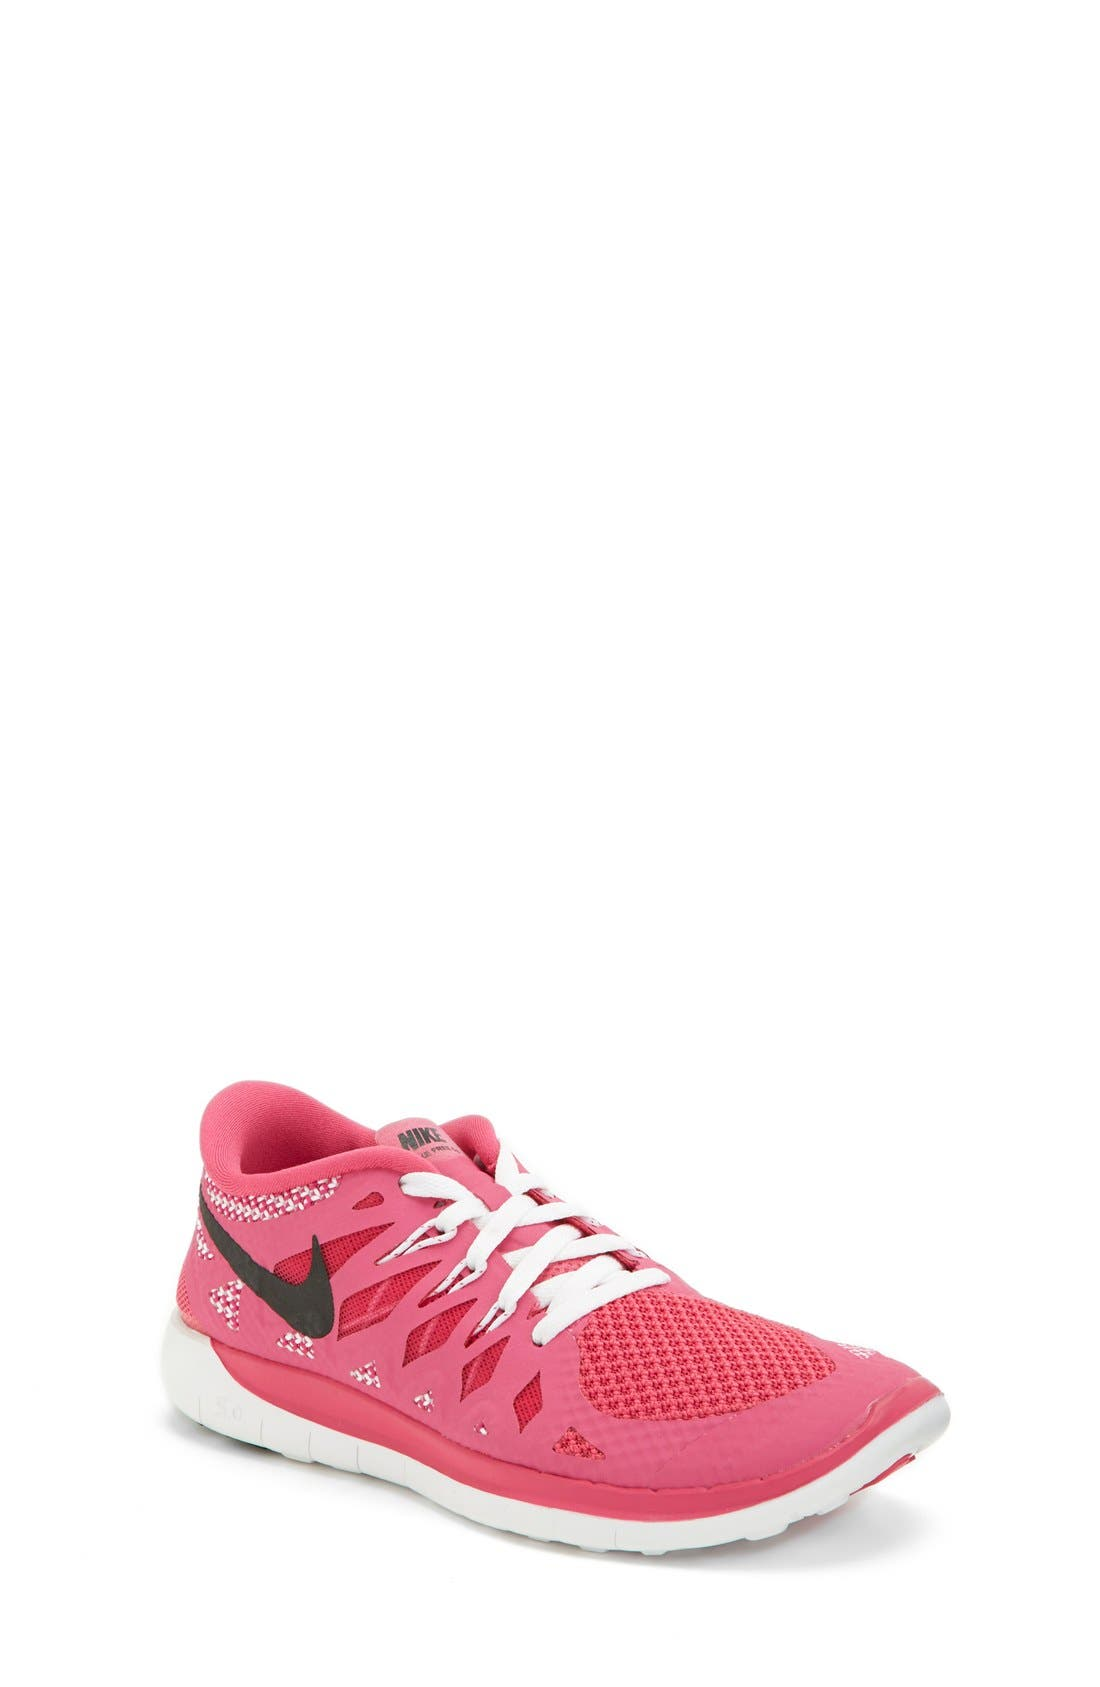 Alternate Image 1 Selected - Nike 'Free 5.0' Running Shoe (Big Kid)